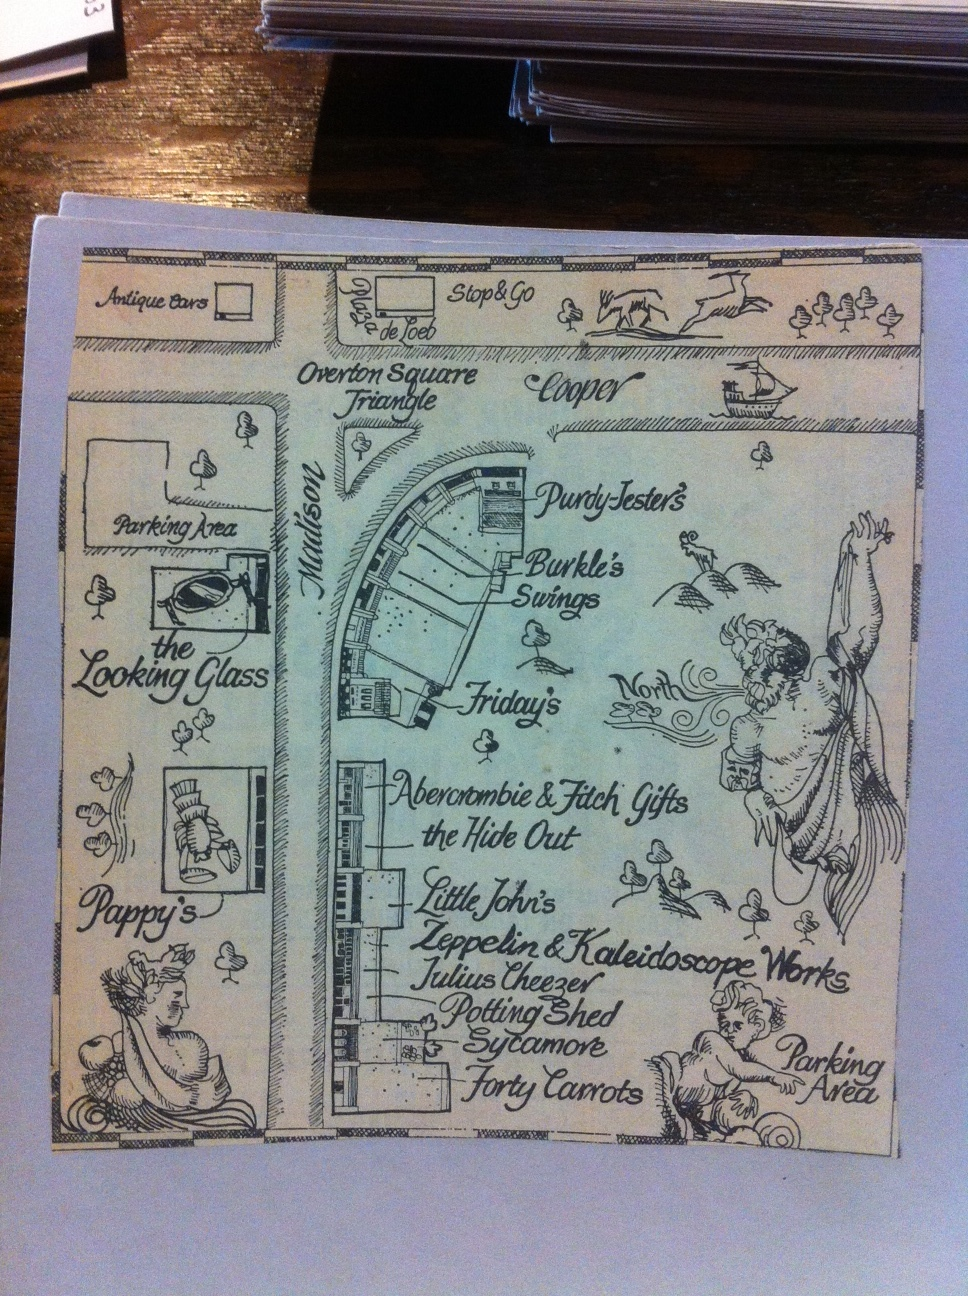 A hand-drawn map of the shops and restaurants of Overton Square in the 1970's